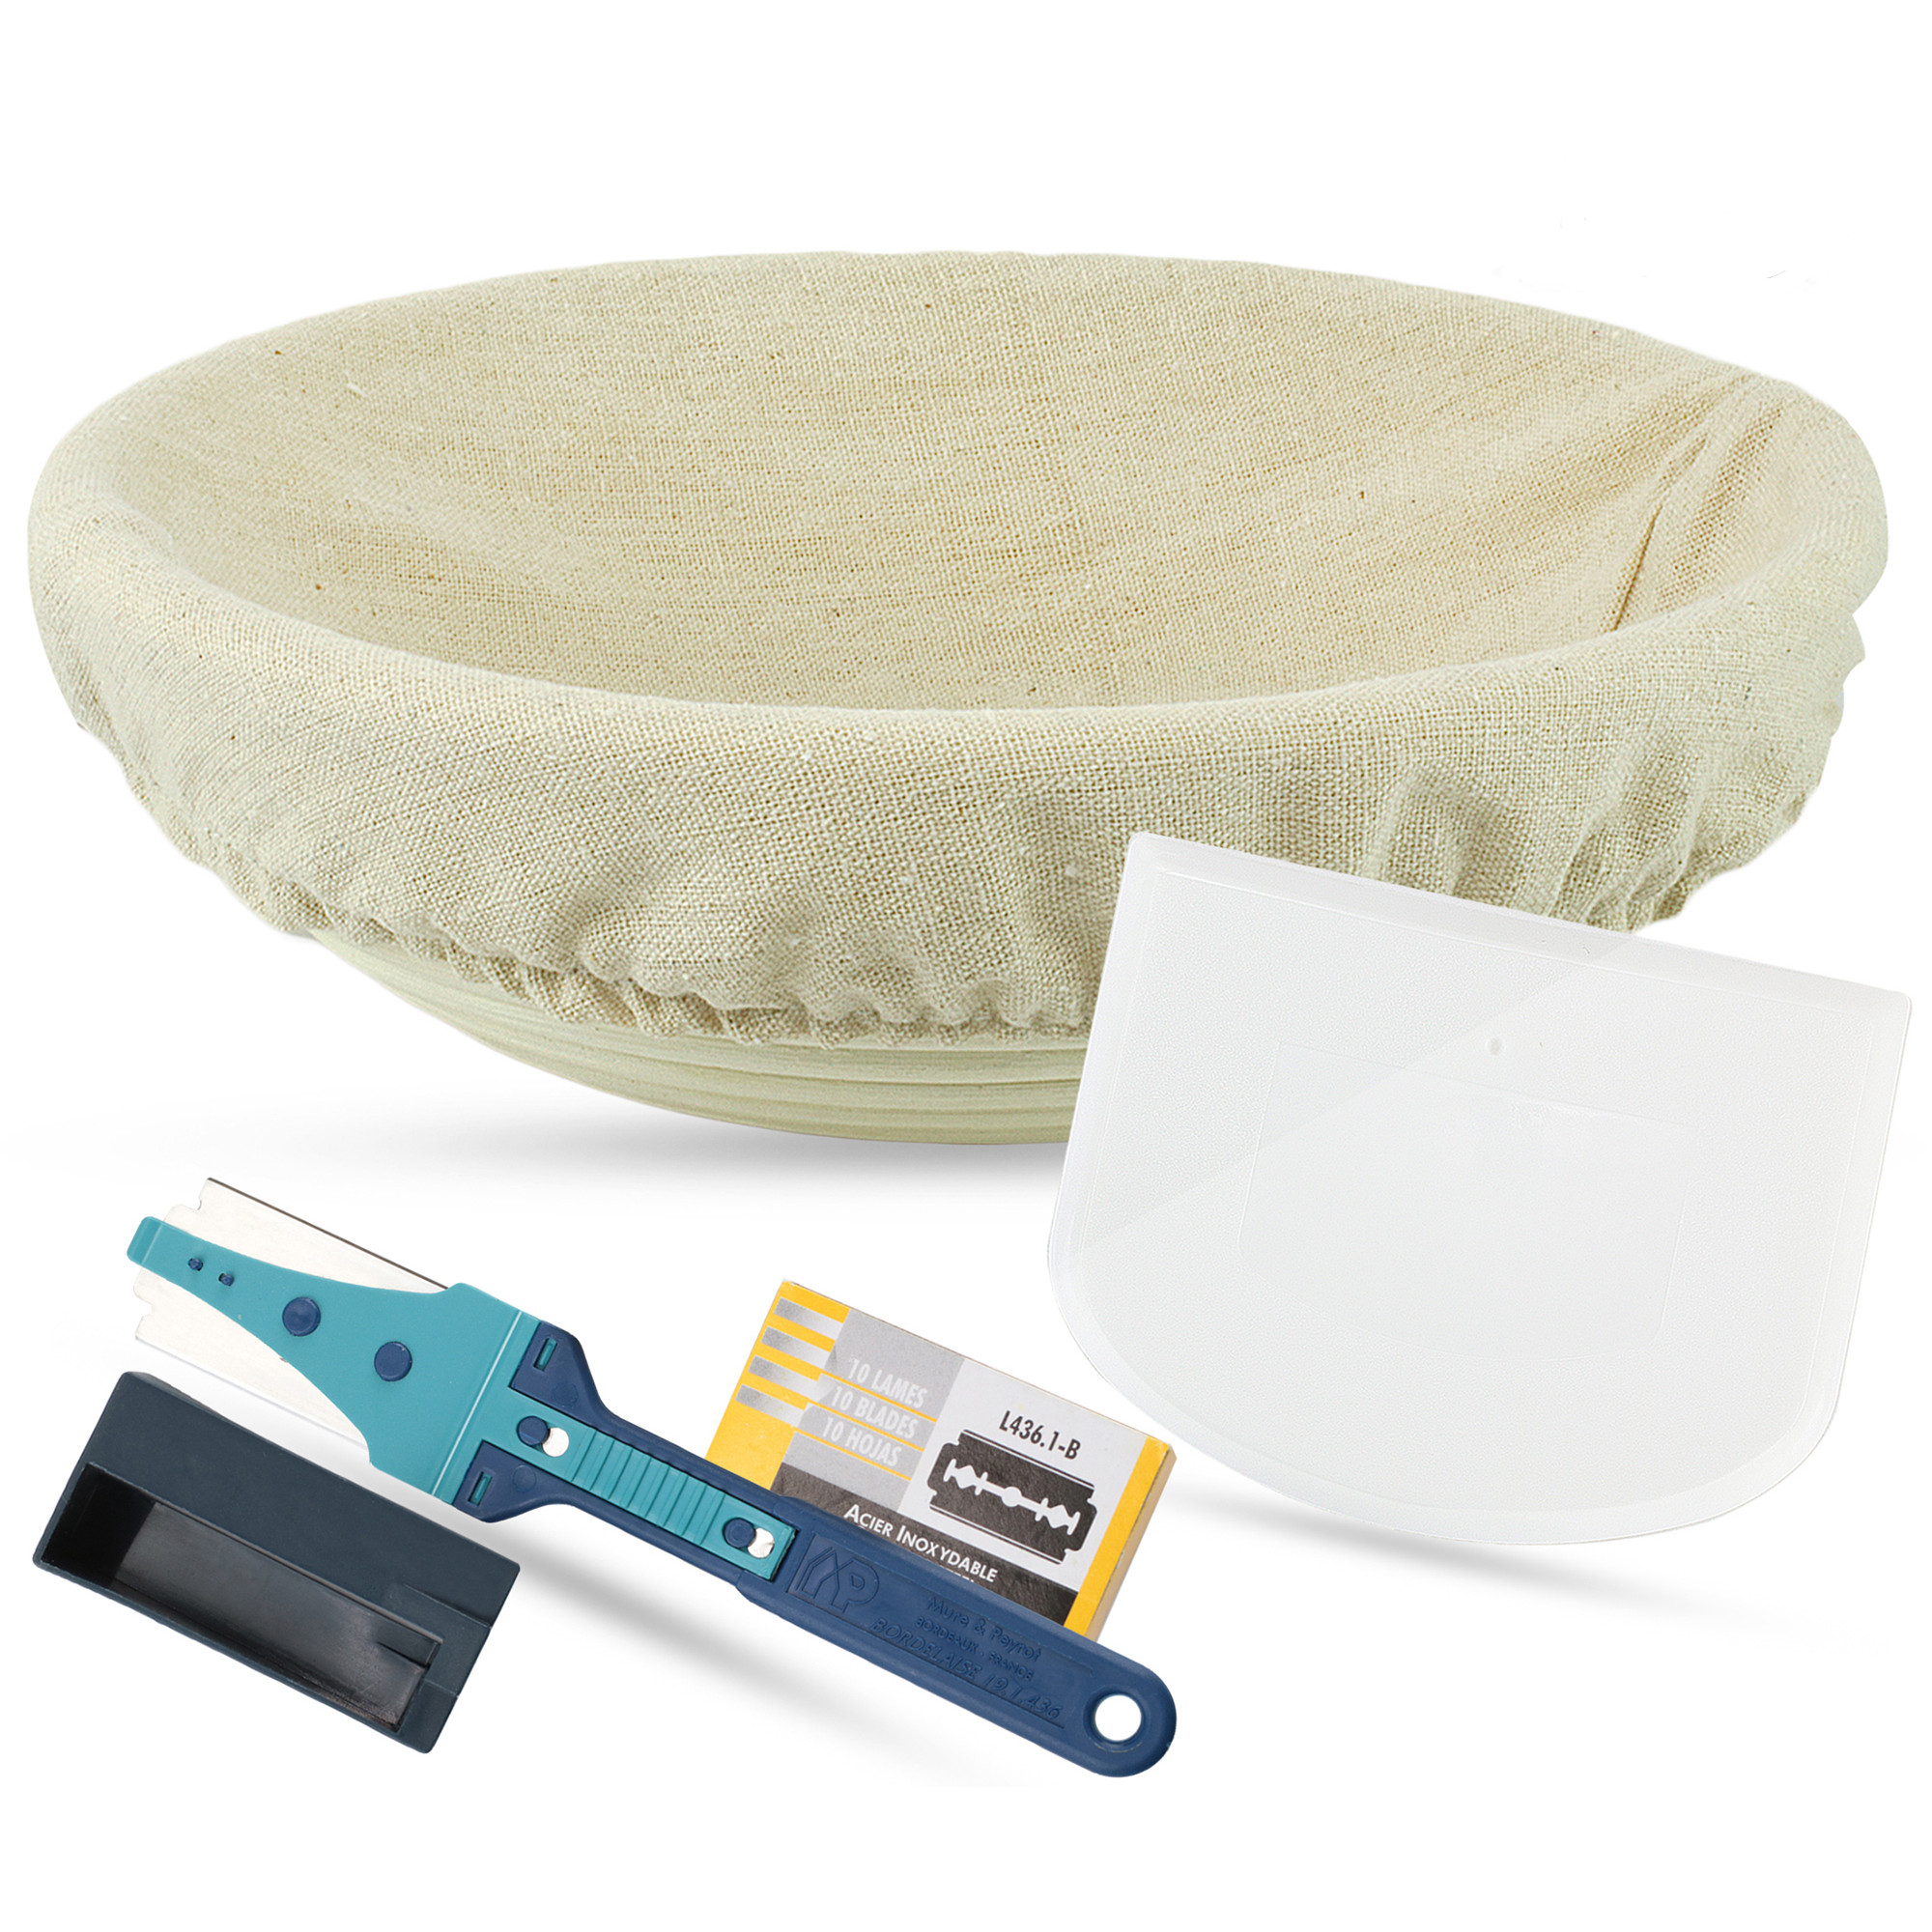 Best Bread Cloth Liner 2021 Where to Buy? BreadsEtcetera.com